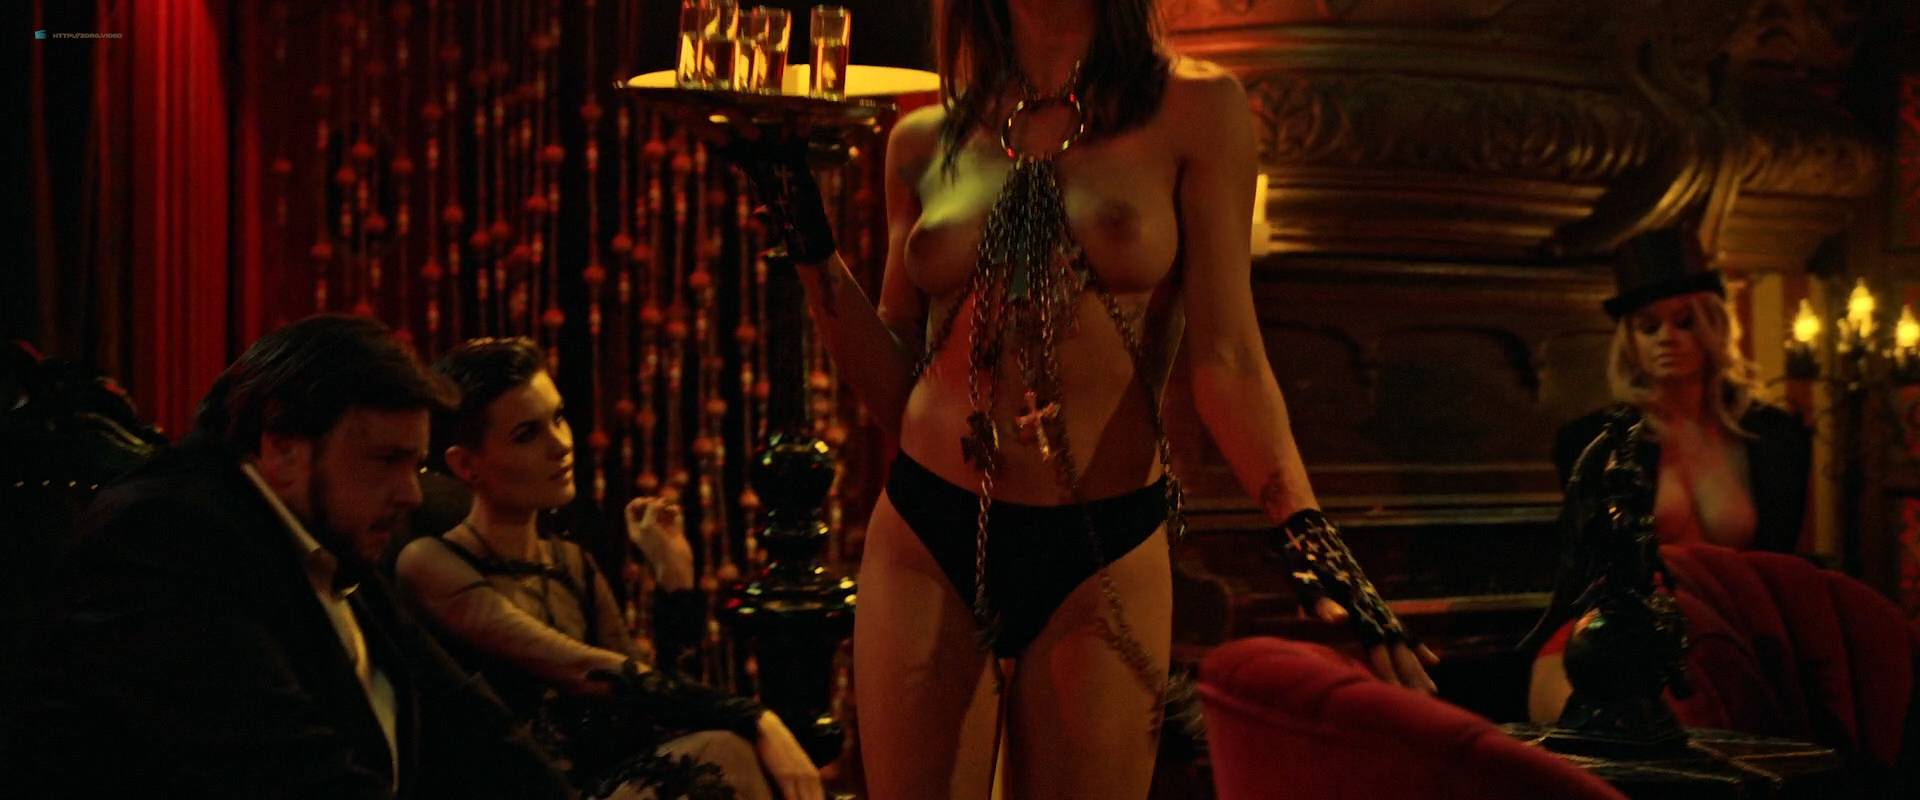 Jesse Sullivan nude topless Cortney Palm and others nude topless too - American Satan (2017) HD 1080p Web (11)